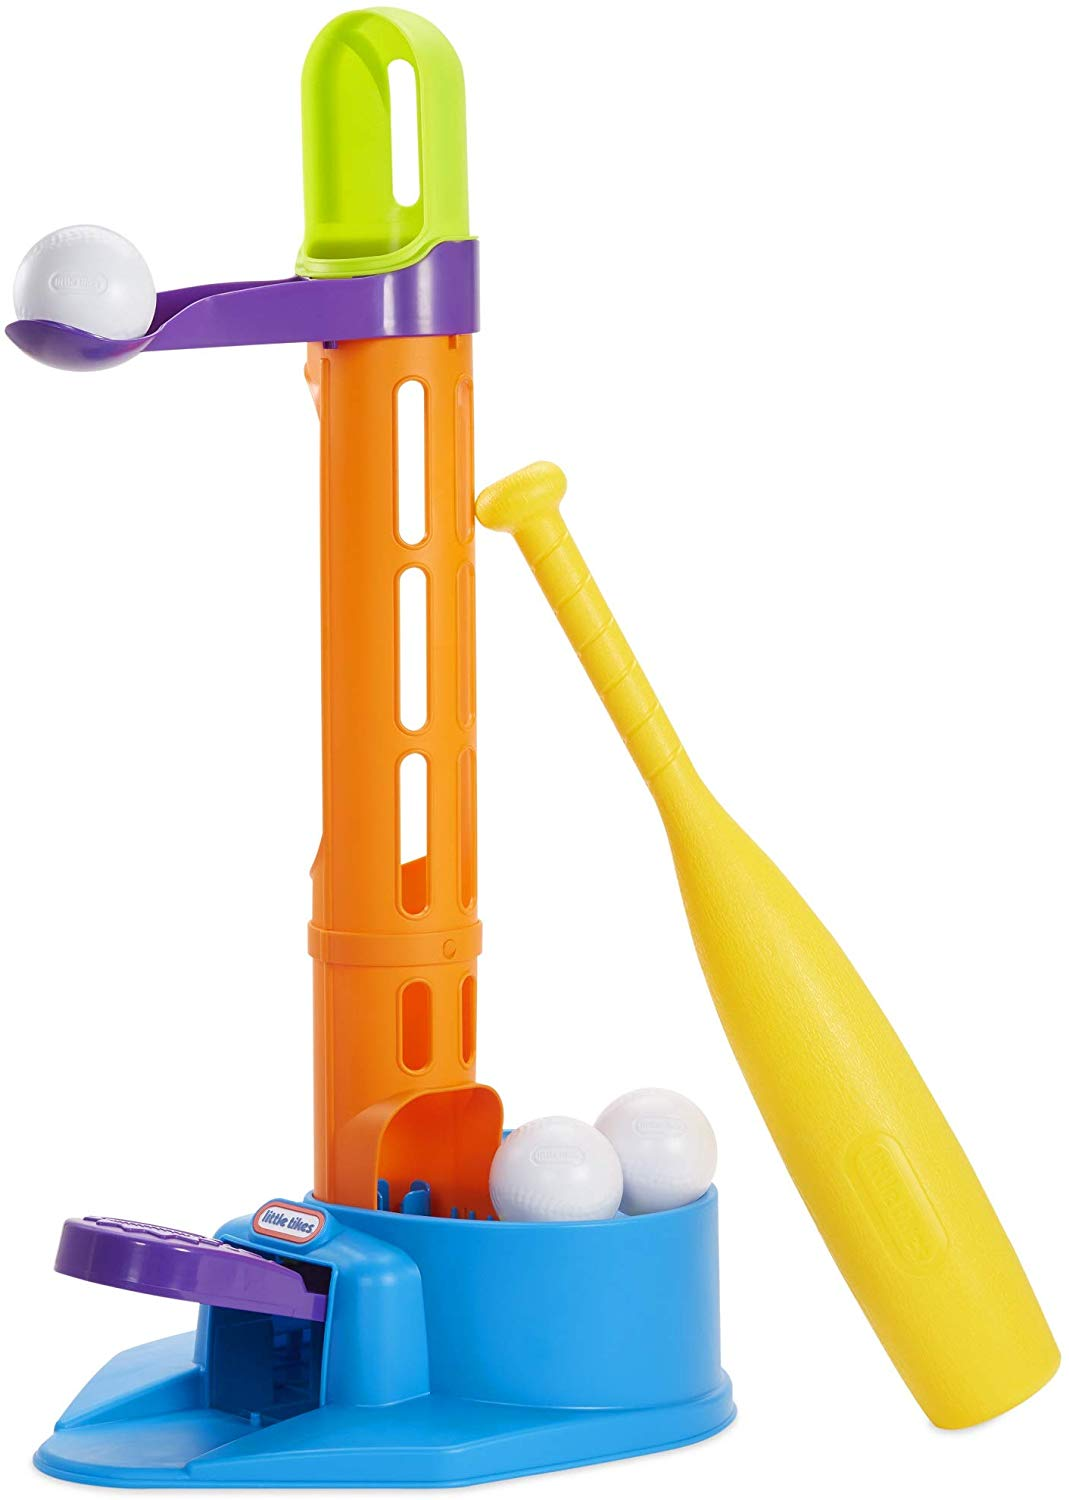 Little Tikes 3-in-1 Triple Splash T-Ball Set only $13.99! (was $29.99)